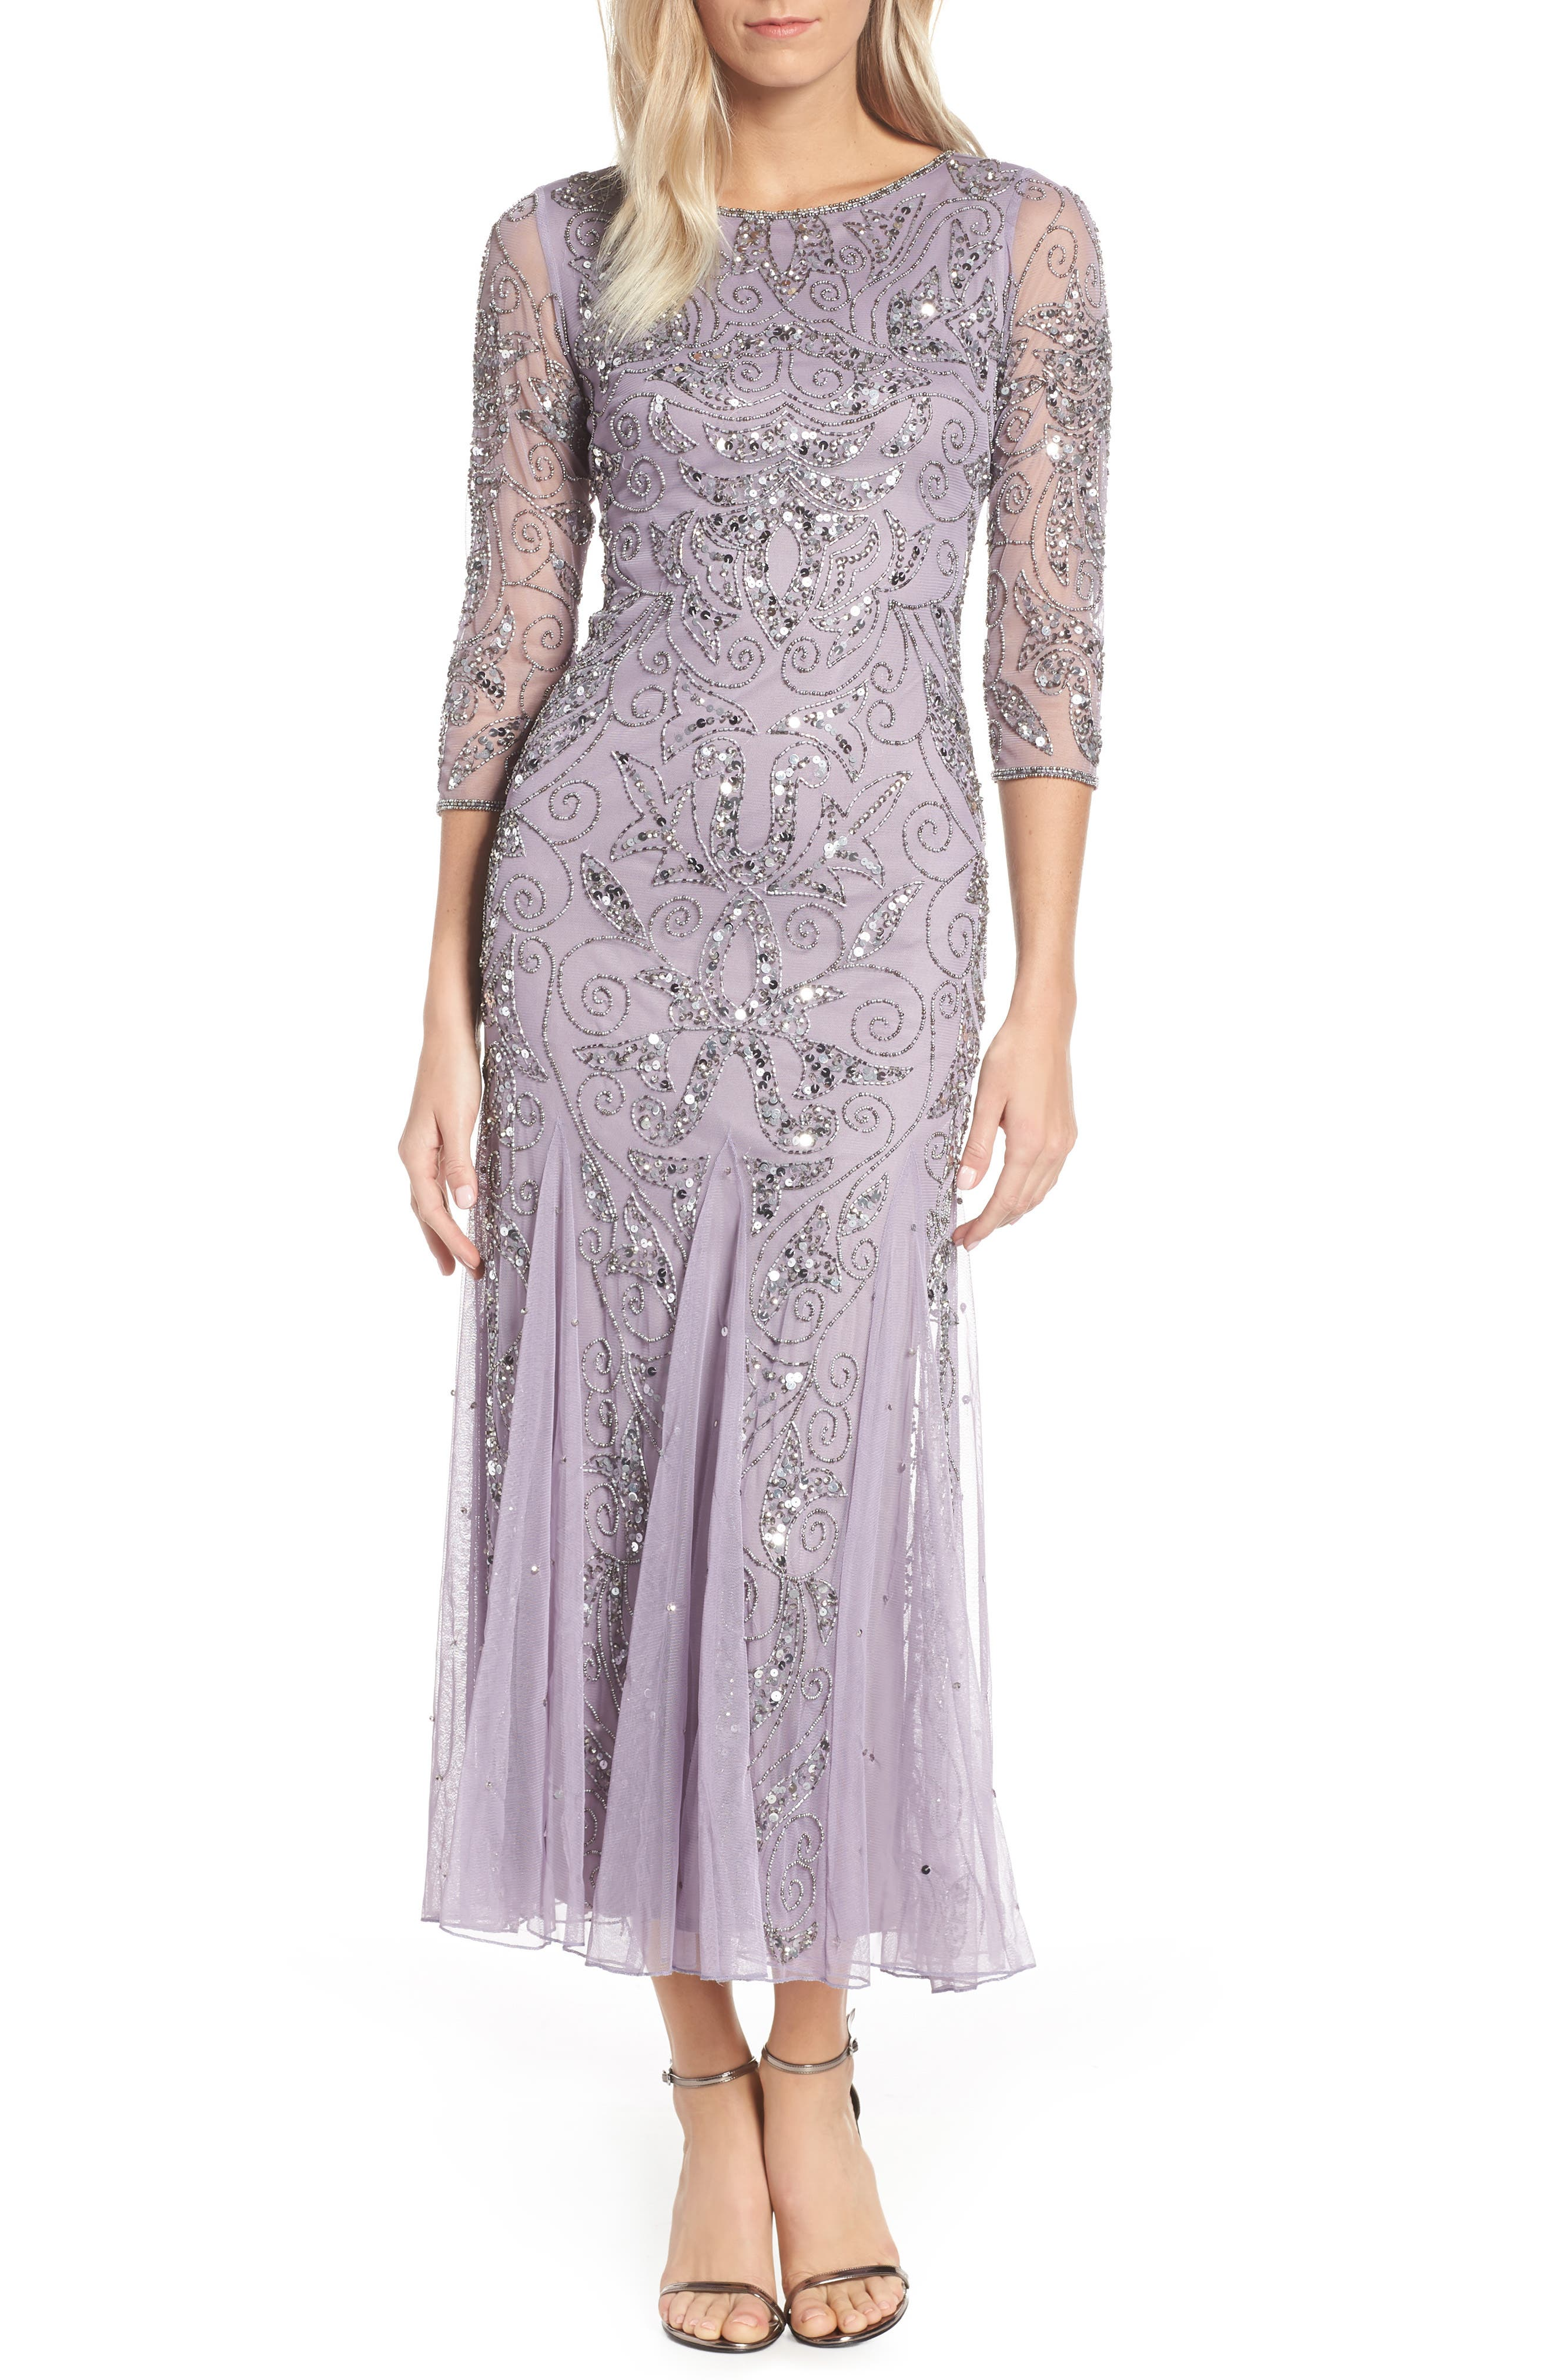 1930s Evening Dresses | Old Hollywood Dress Womens Pisarro Nights Embellished Mesh Gown Size 2 - Purple $218.00 AT vintagedancer.com